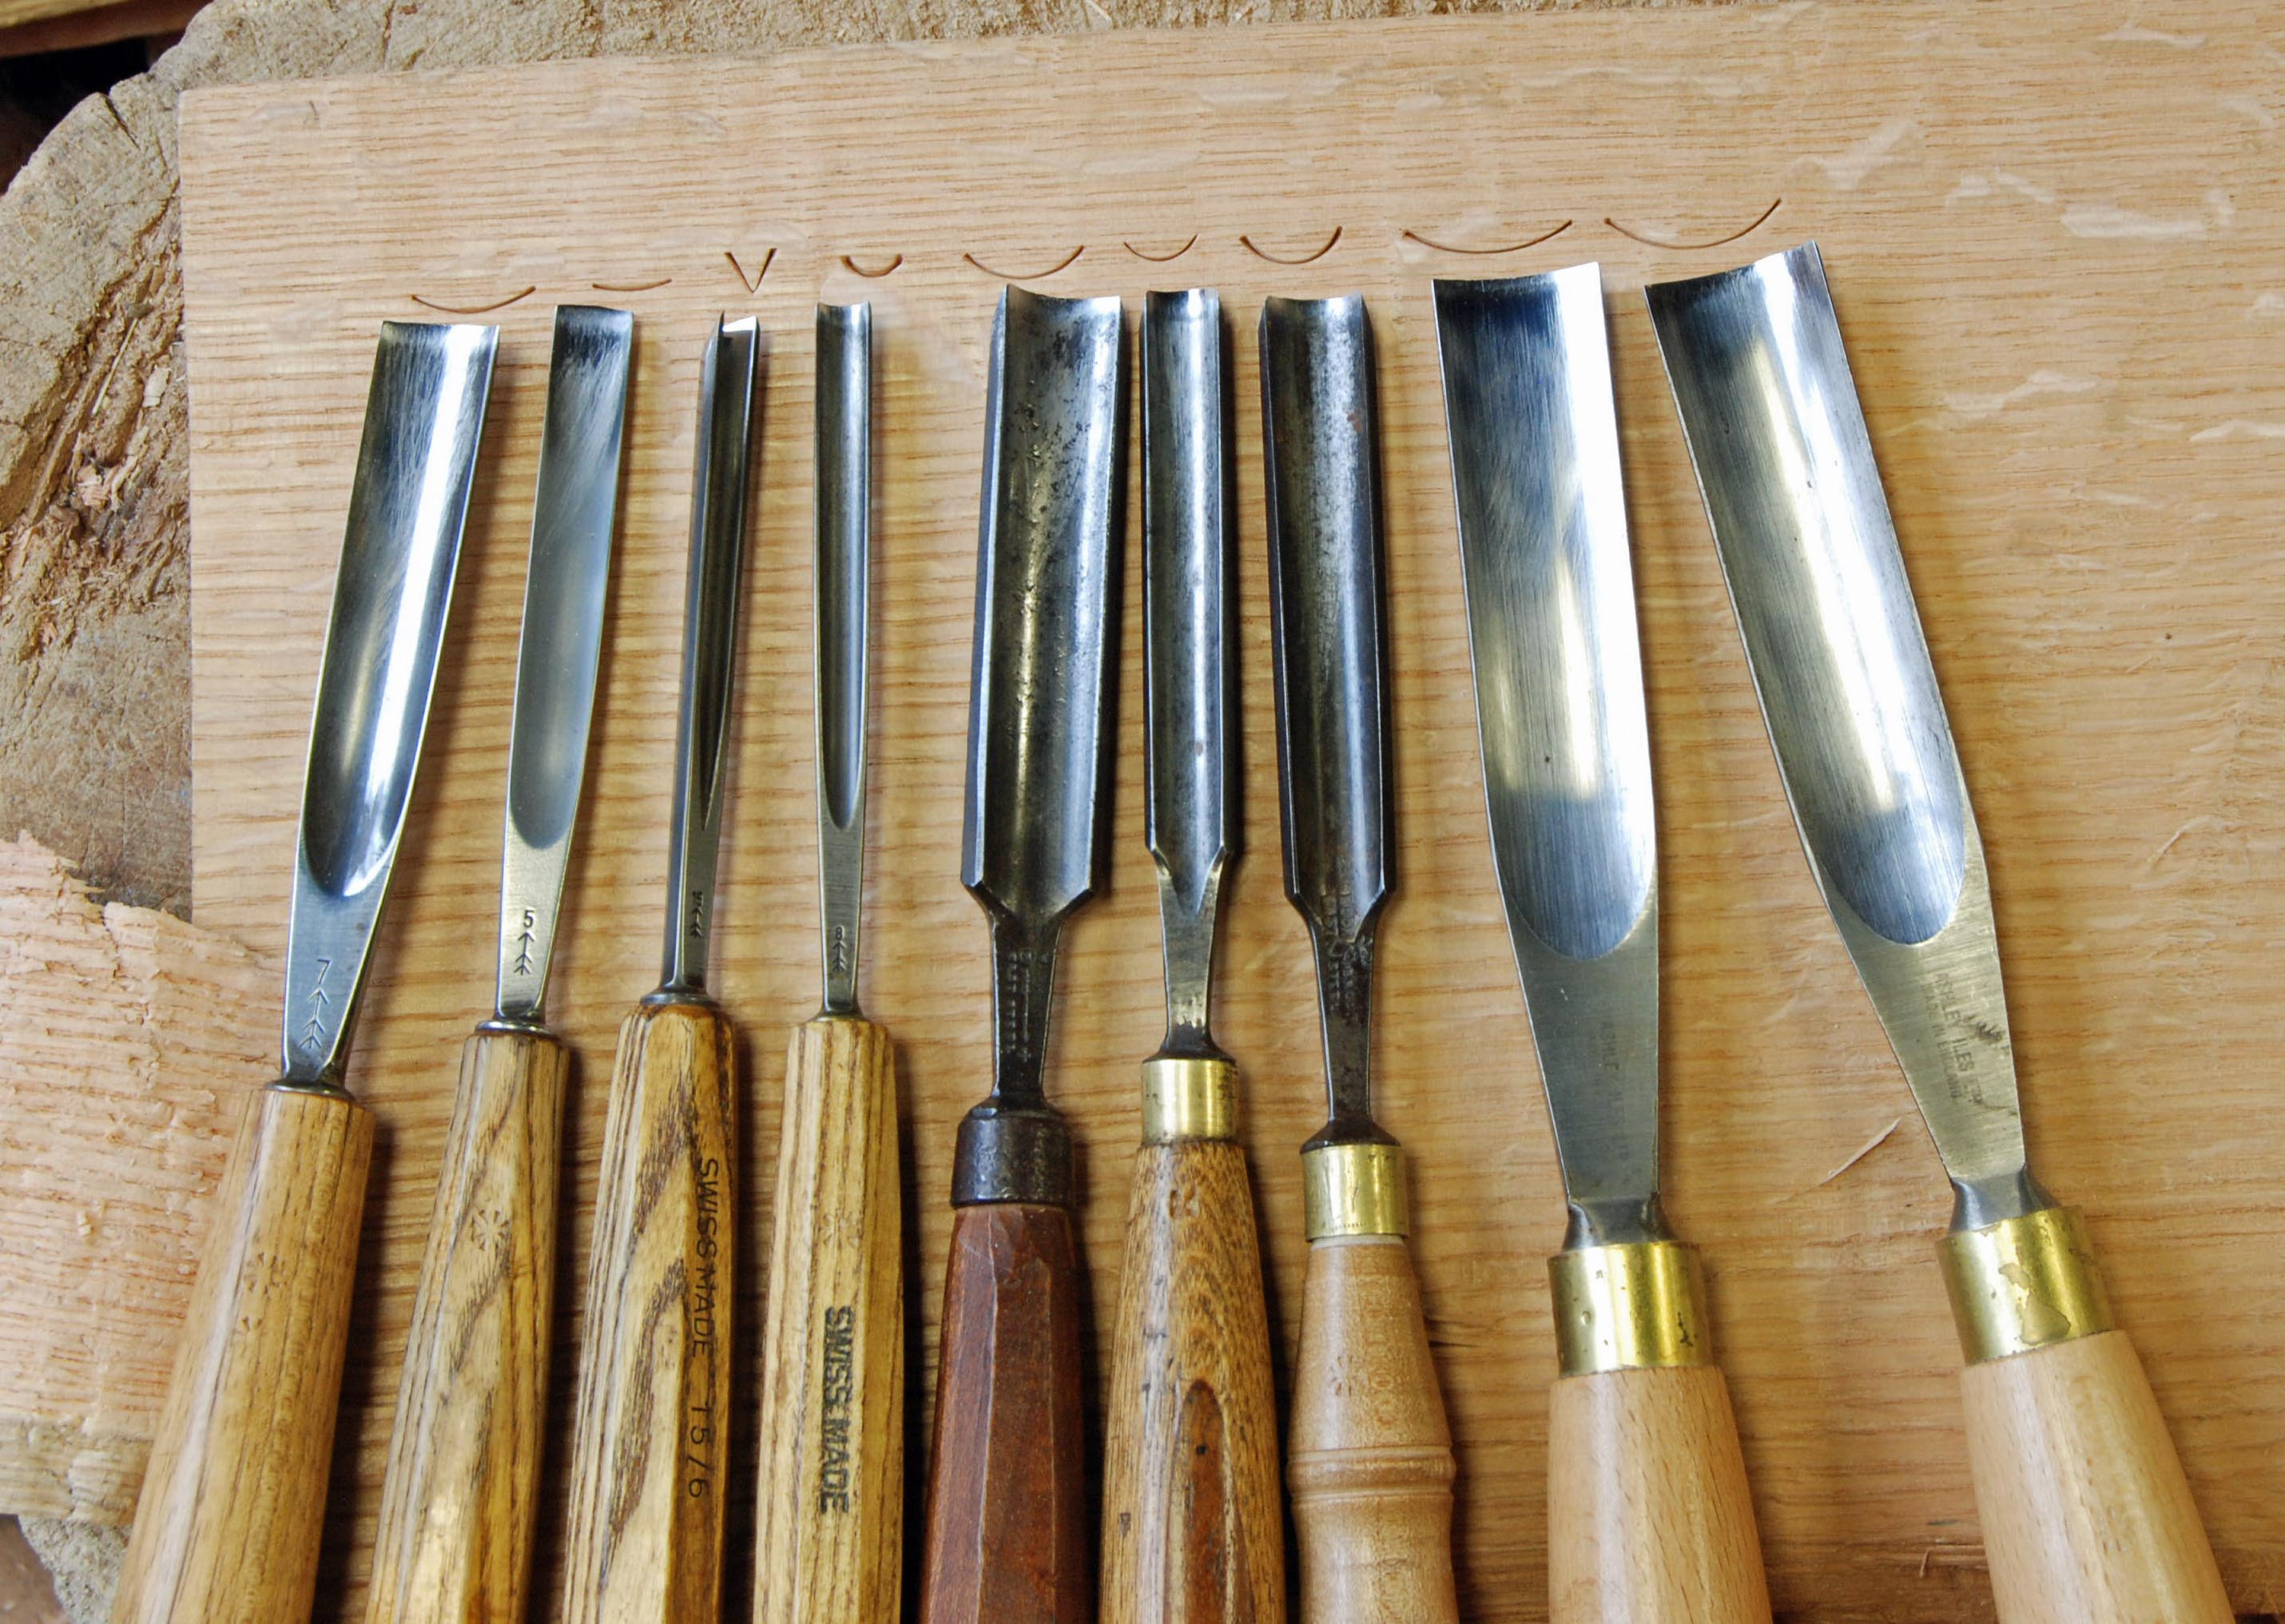 Swiss made wood carving tools uk,wood boiler for sale pei,make a ...